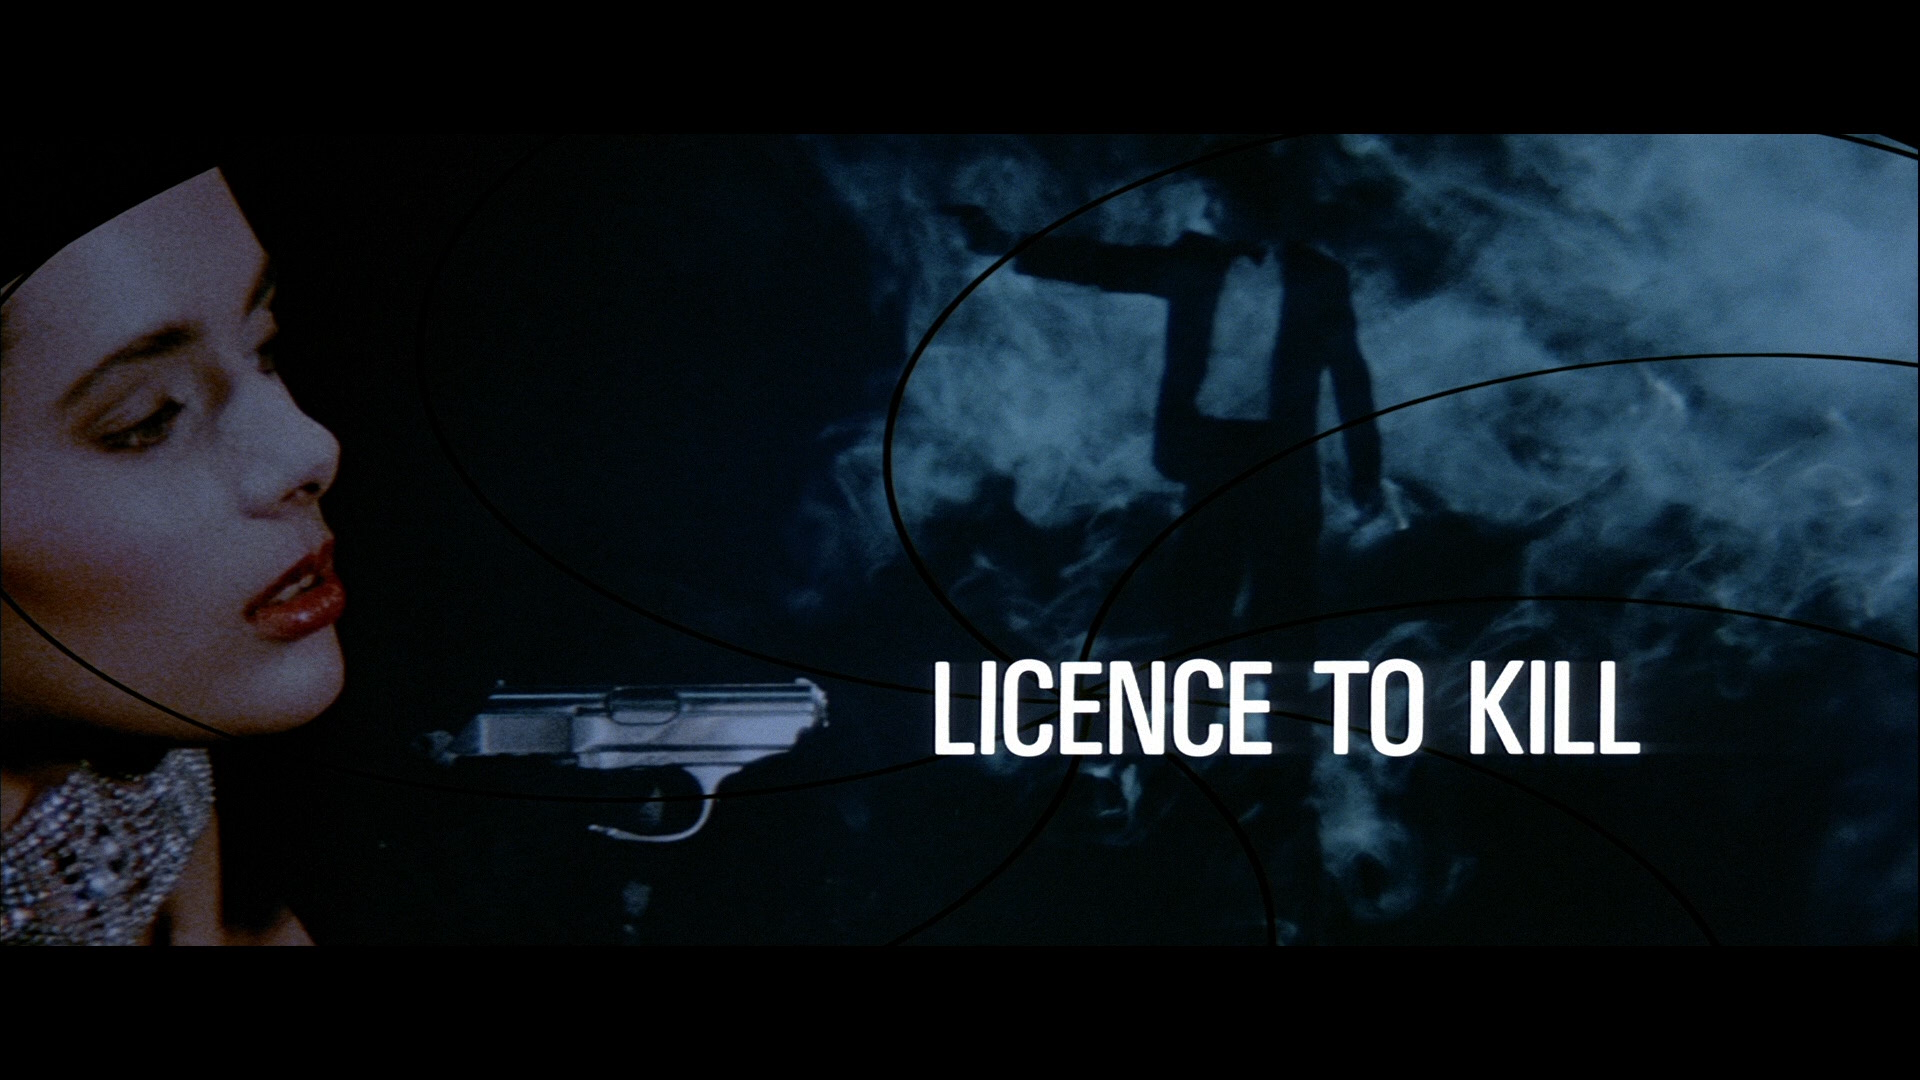 Licence to Kill titles